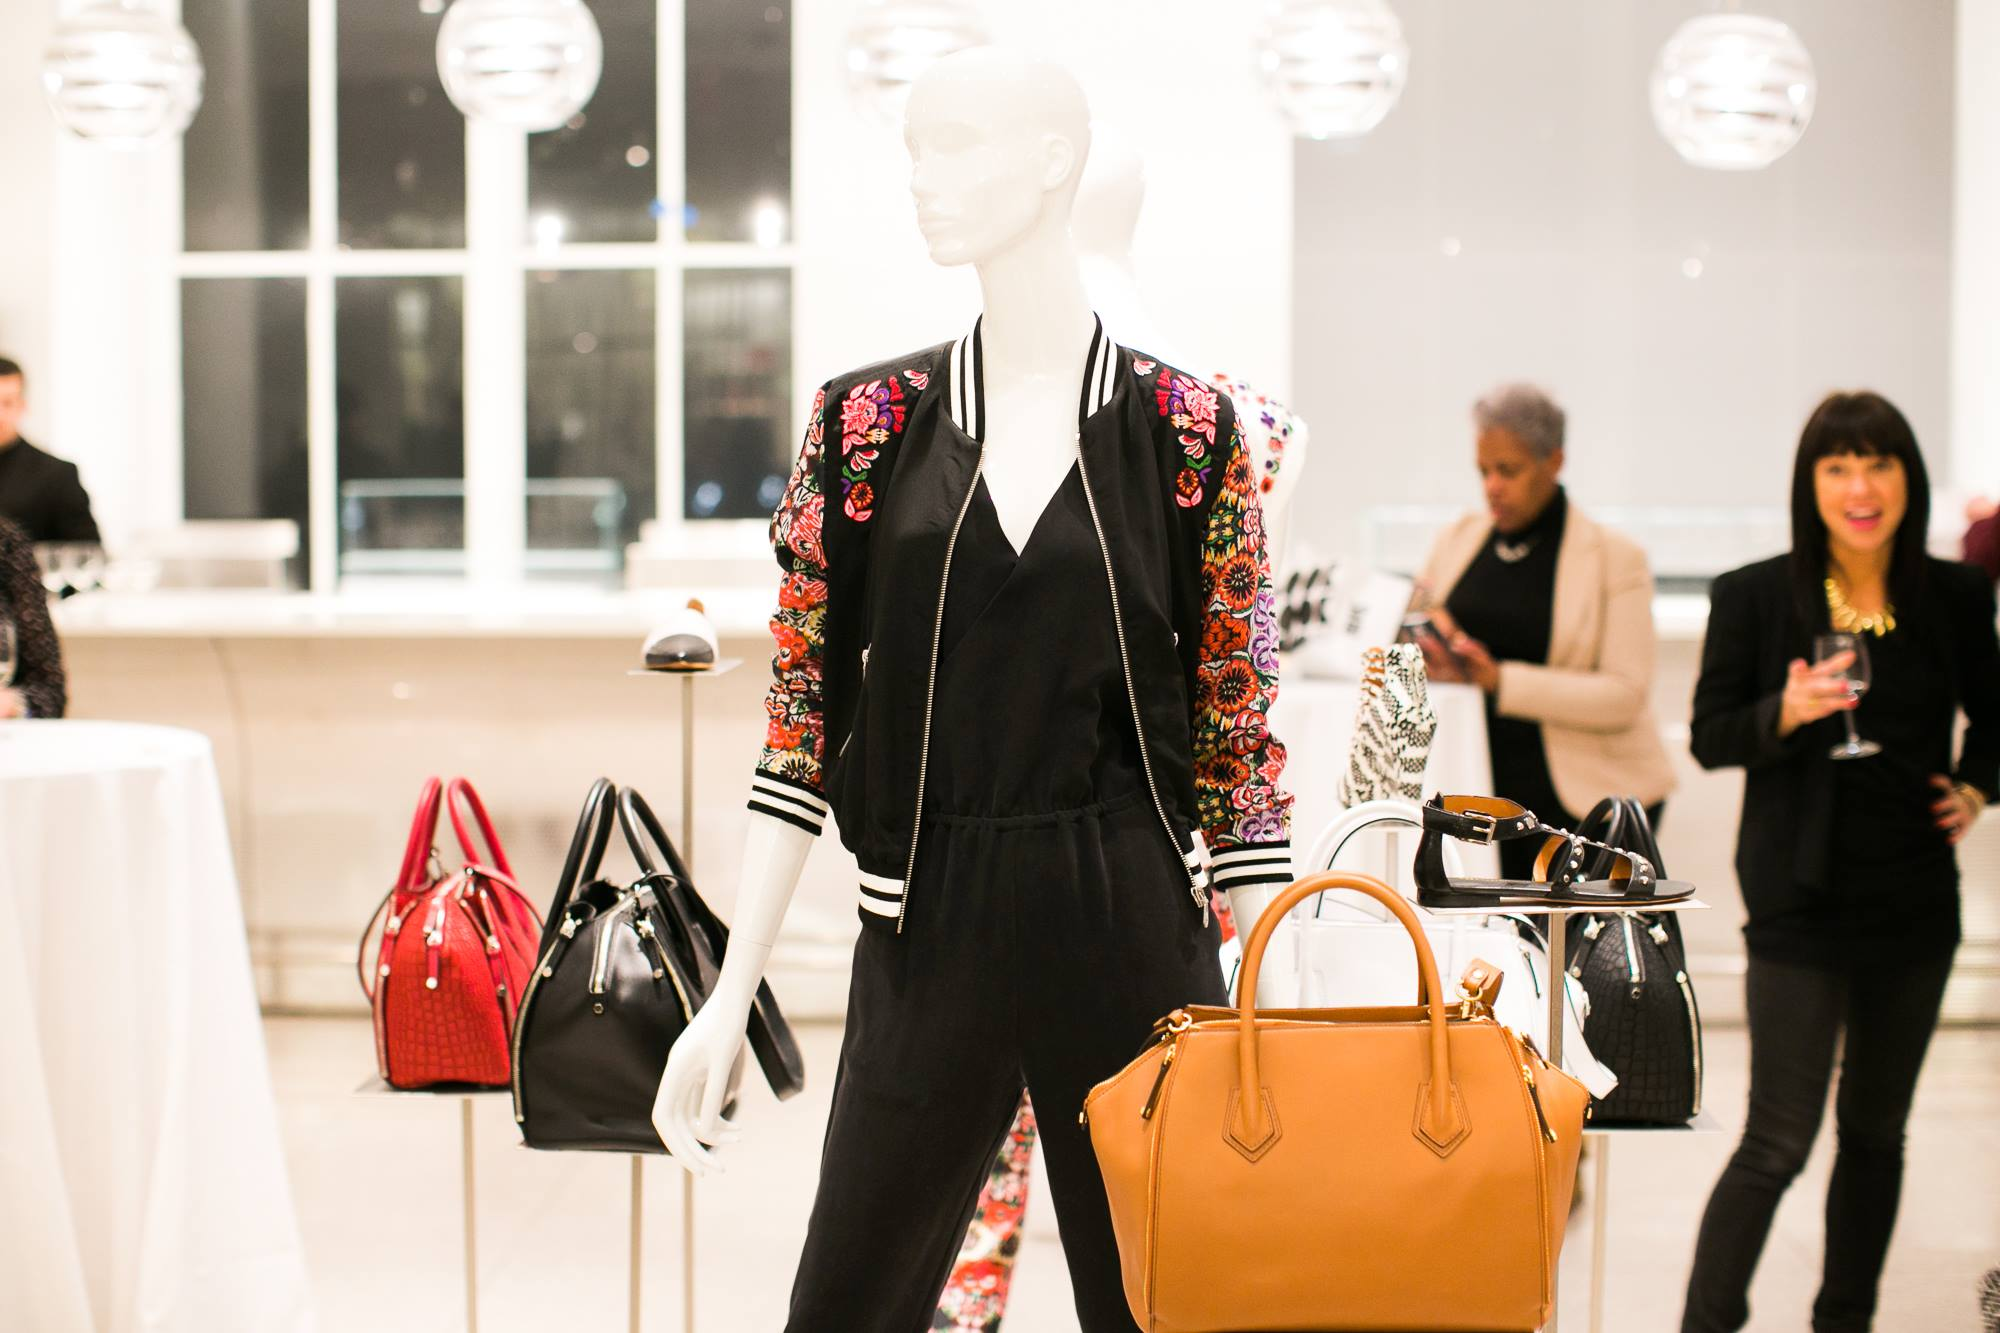 Rebecca Minkoff launches the Perry Satchel at exclusive AmEx event